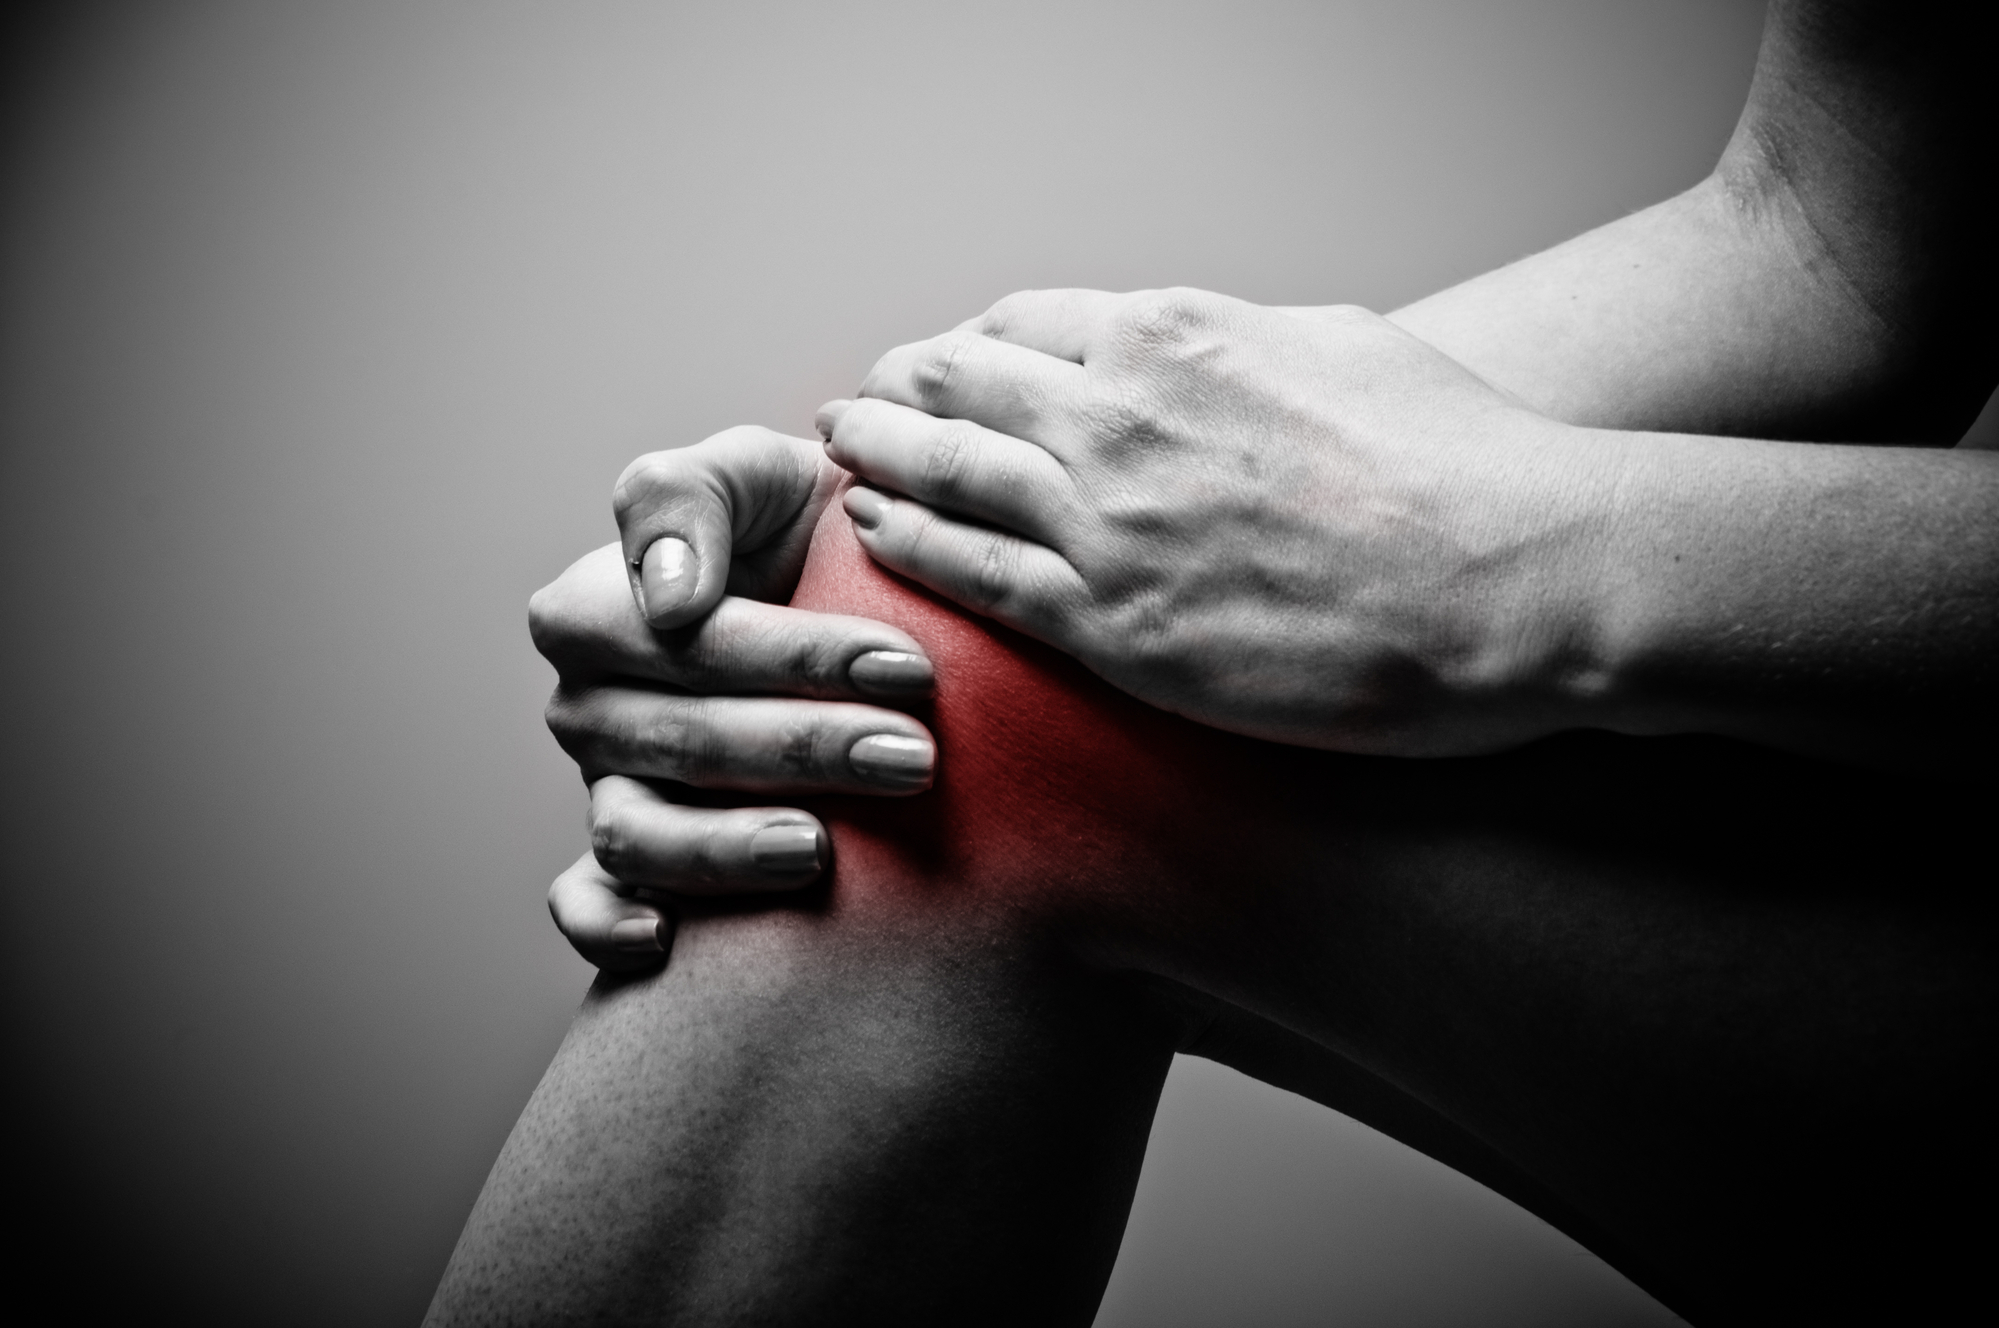 A new hydrogel could be soft and strong enough to replace damaged cartilage in knees